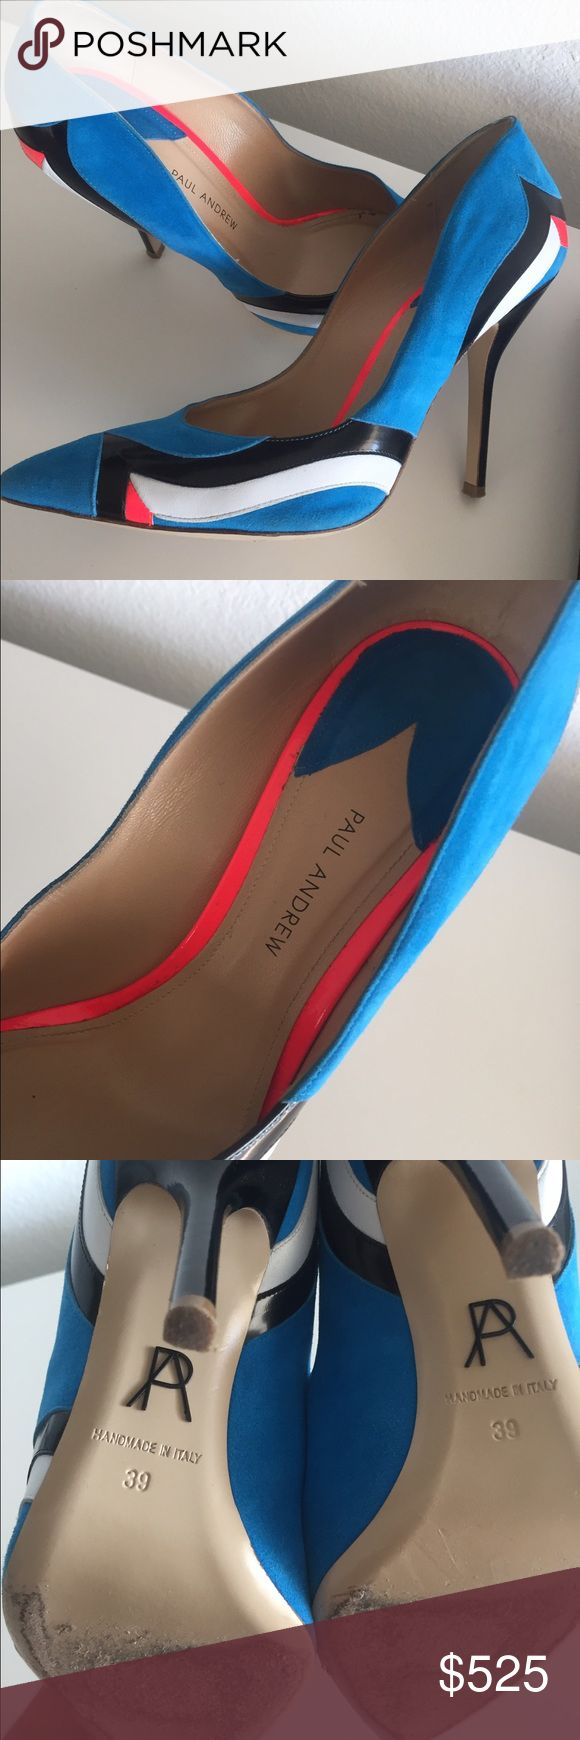 Birds of Paradise in wearable form! Phoenix paneled suede, leather and patent-leather Paul Andrew pumps with a 4.3 inch in size EU39.  Worn twice during my honeymoon in Greece... Paul Andrew Shoes Heels